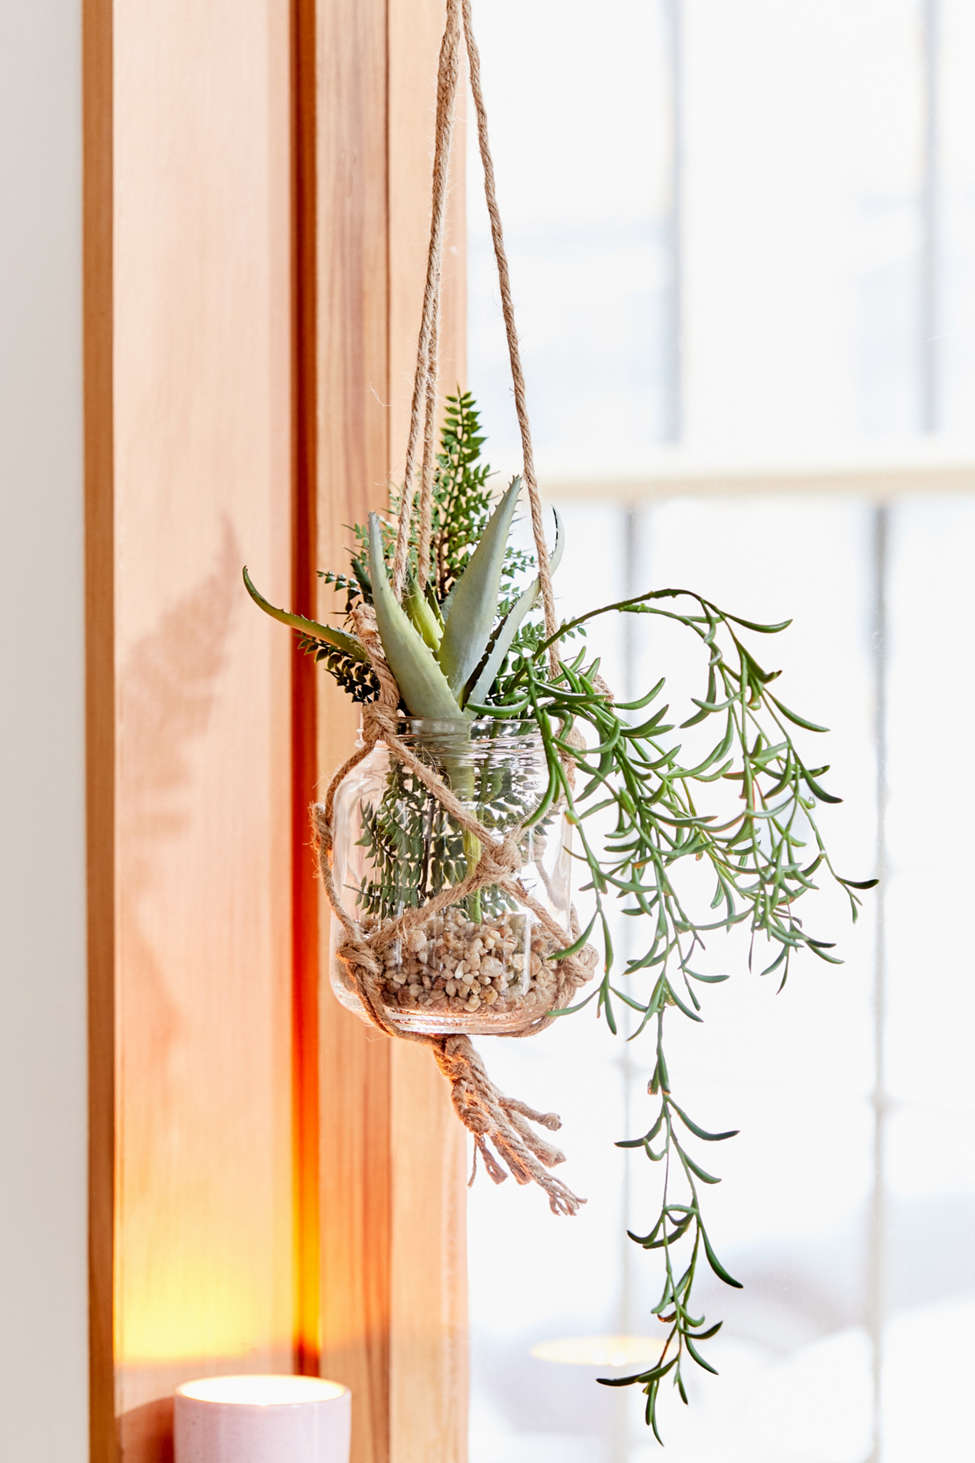 Slide View: 1: Hanging Potted Faux Plant